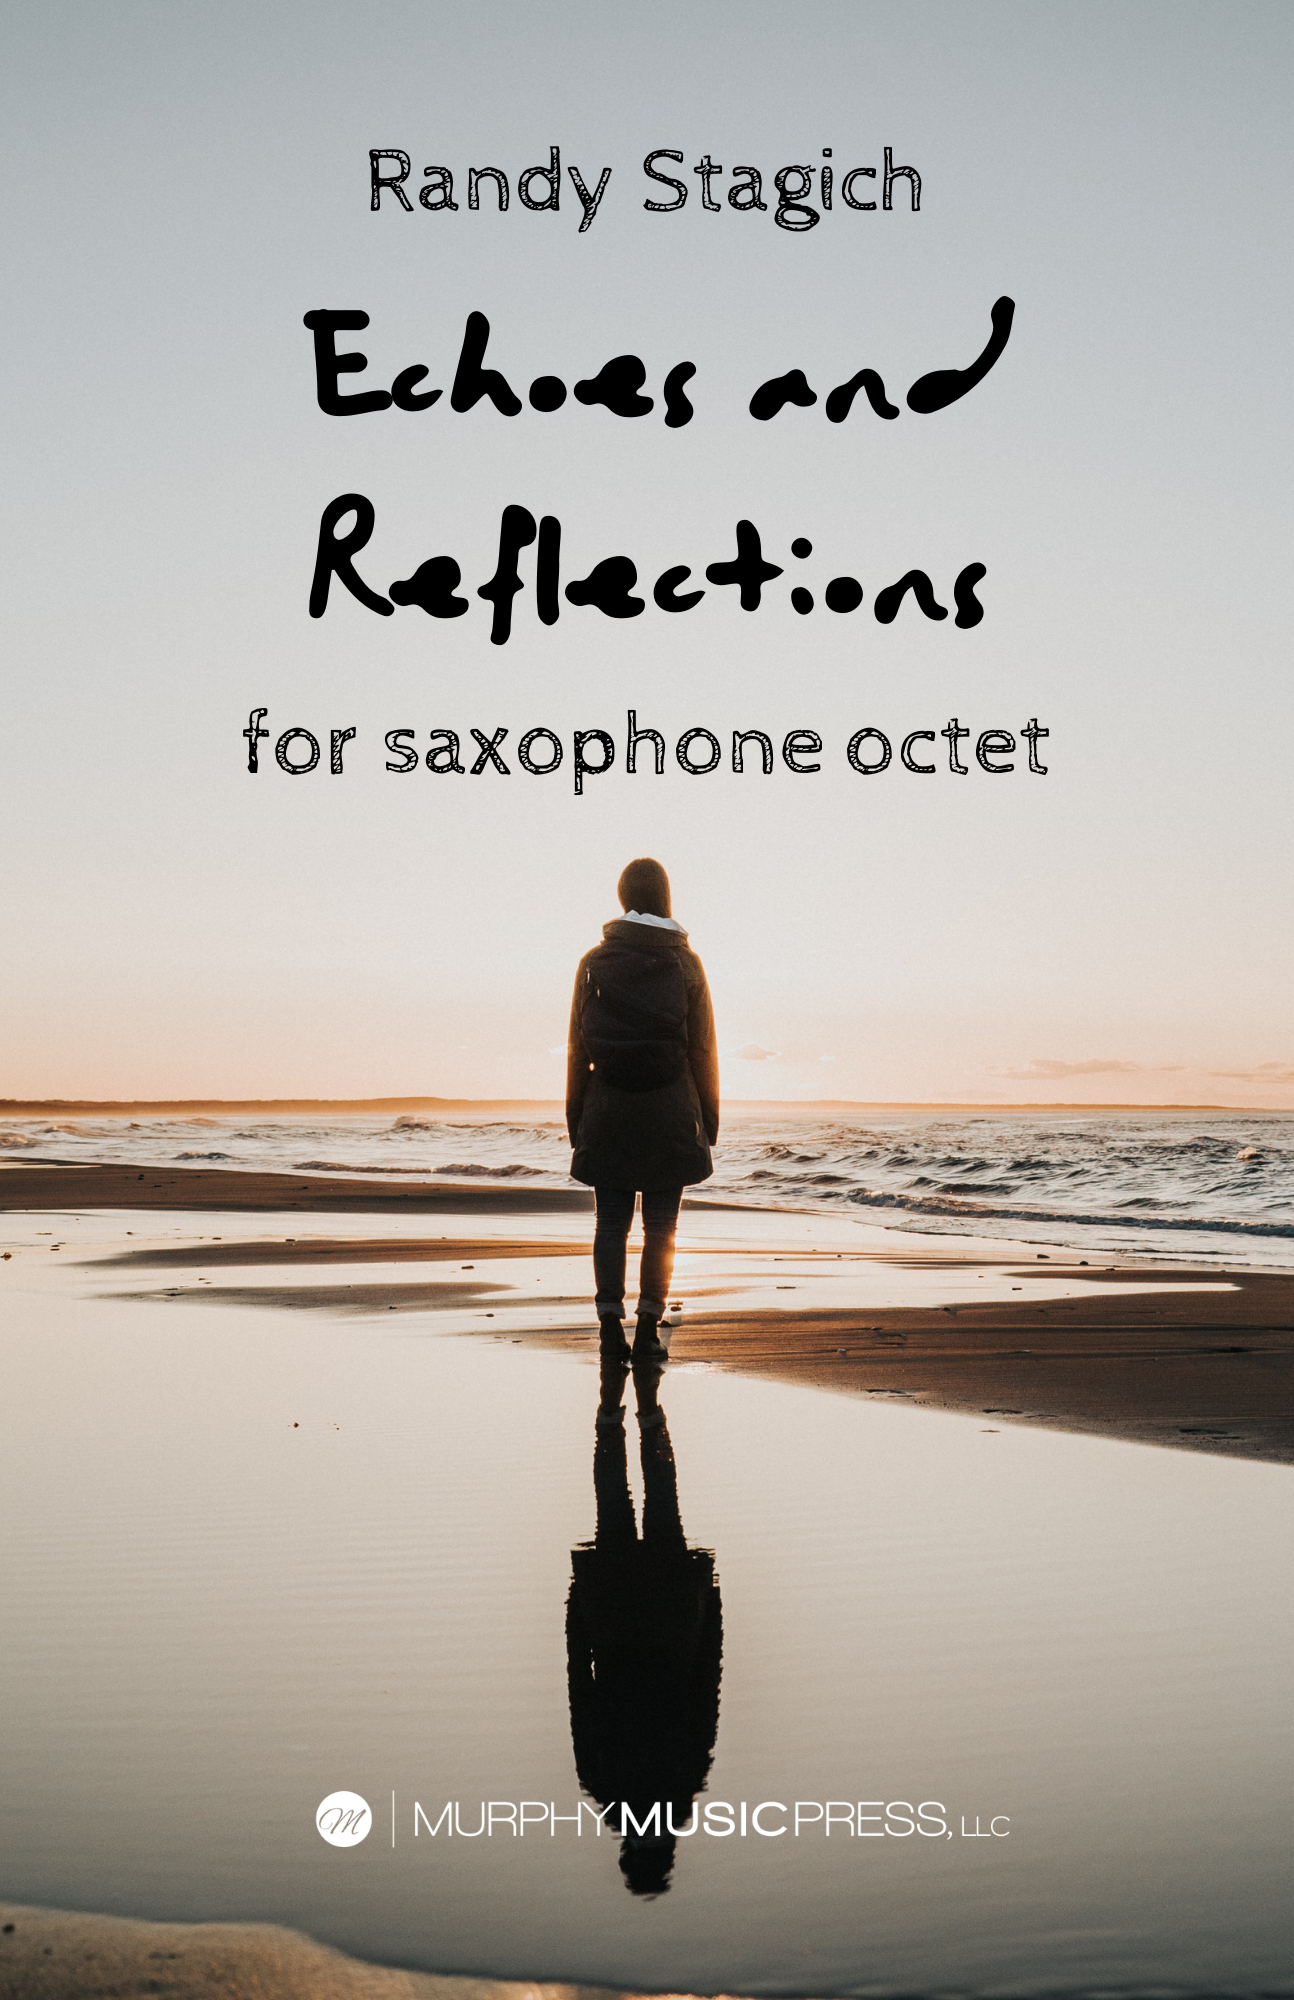 Echoes And Reflections by Randy Stagich